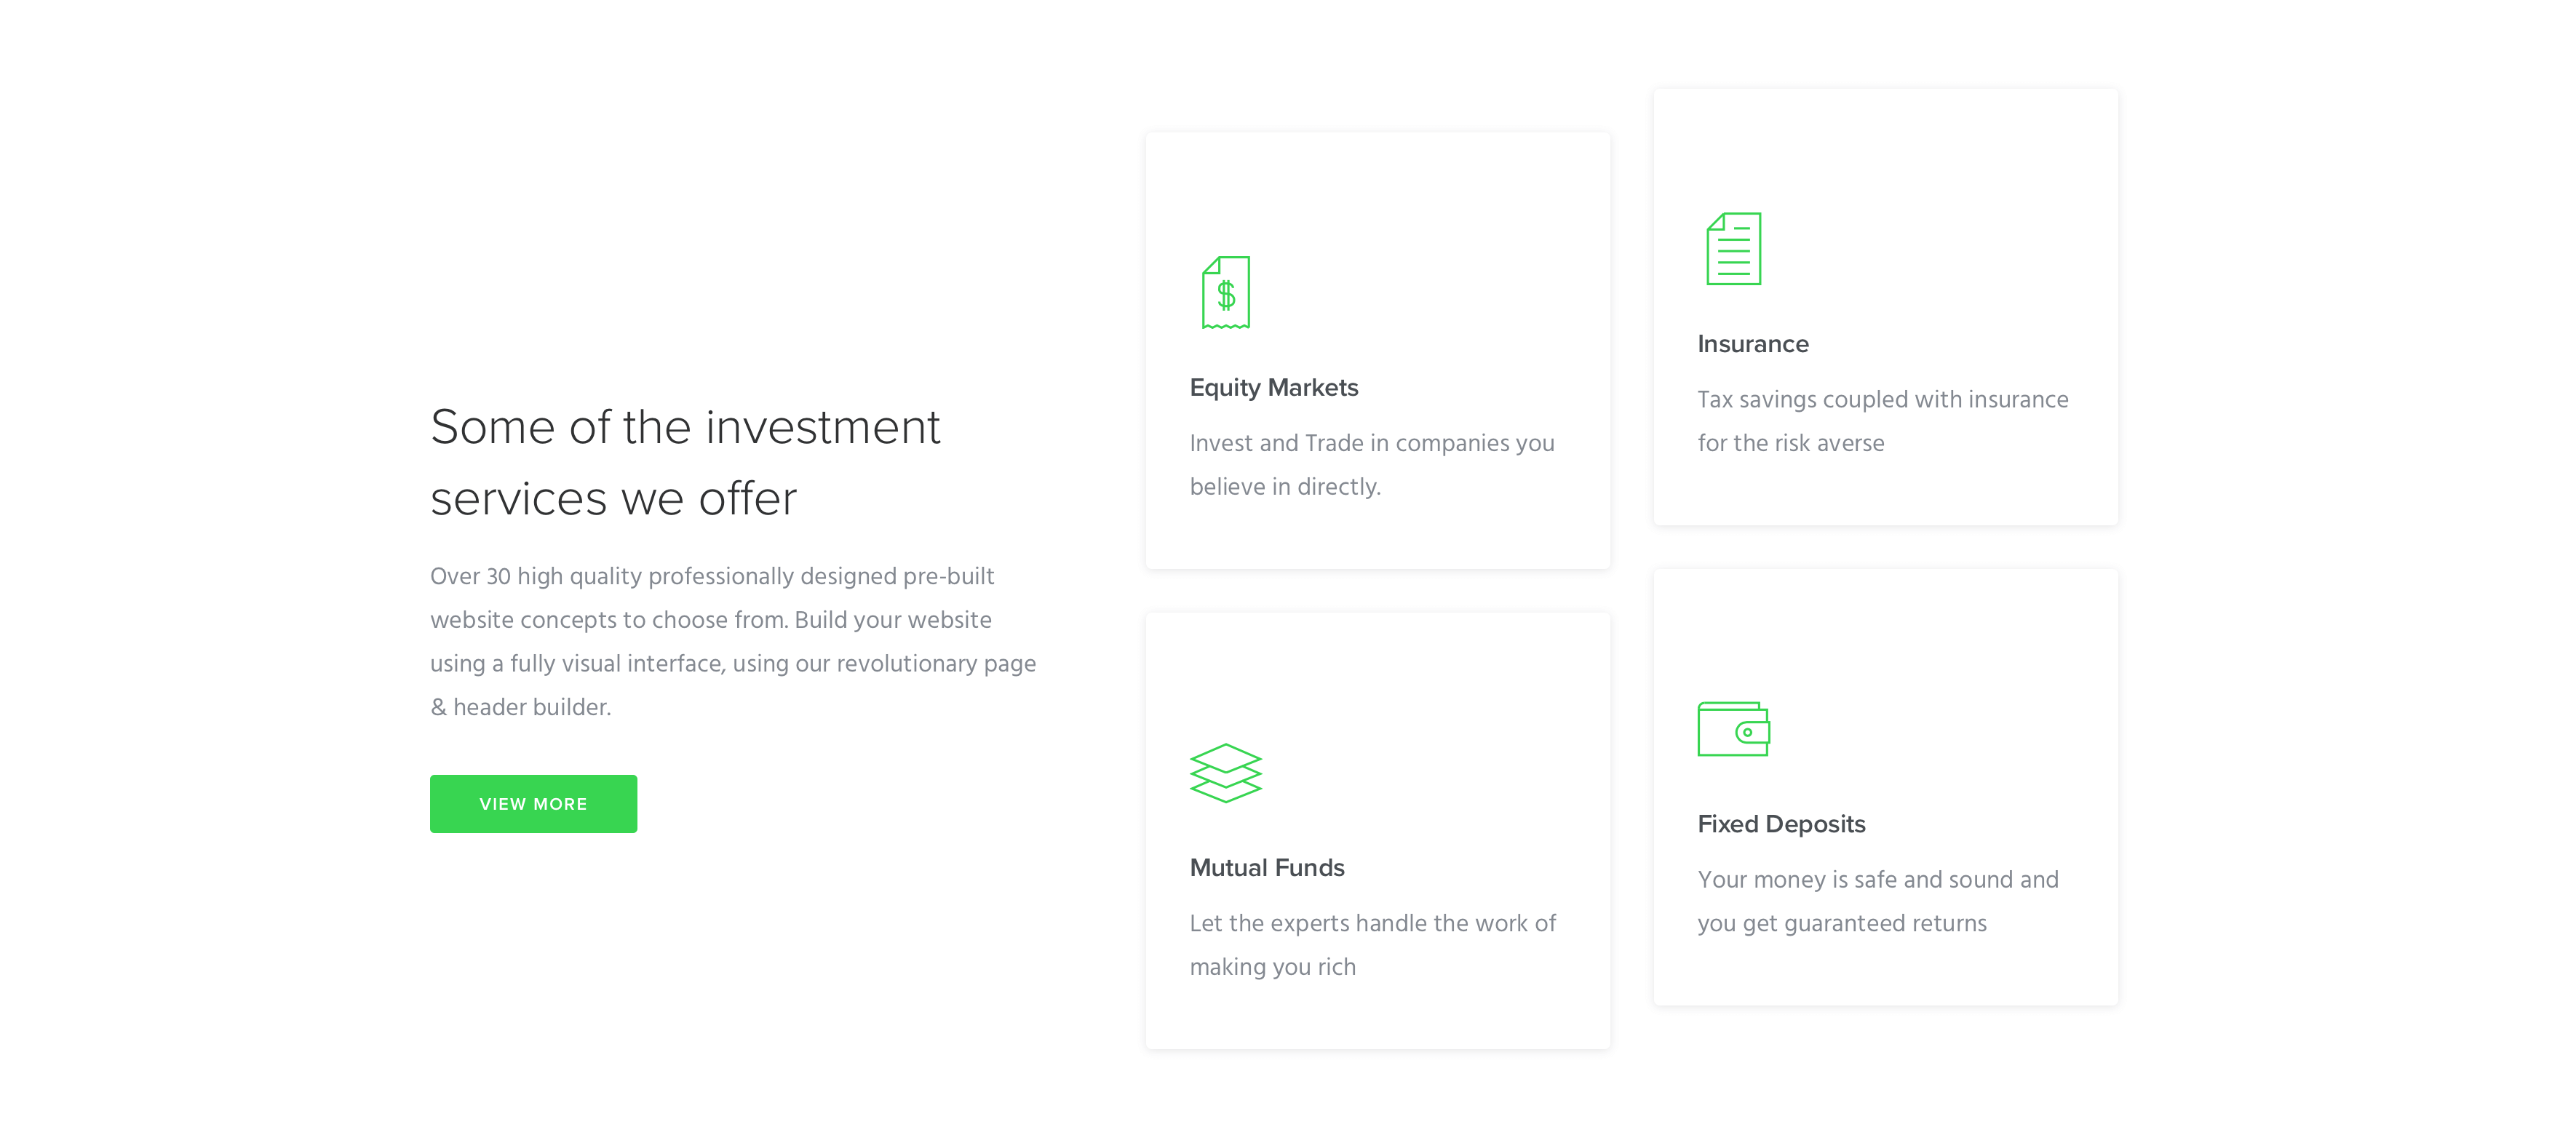 Website design - Use of icons